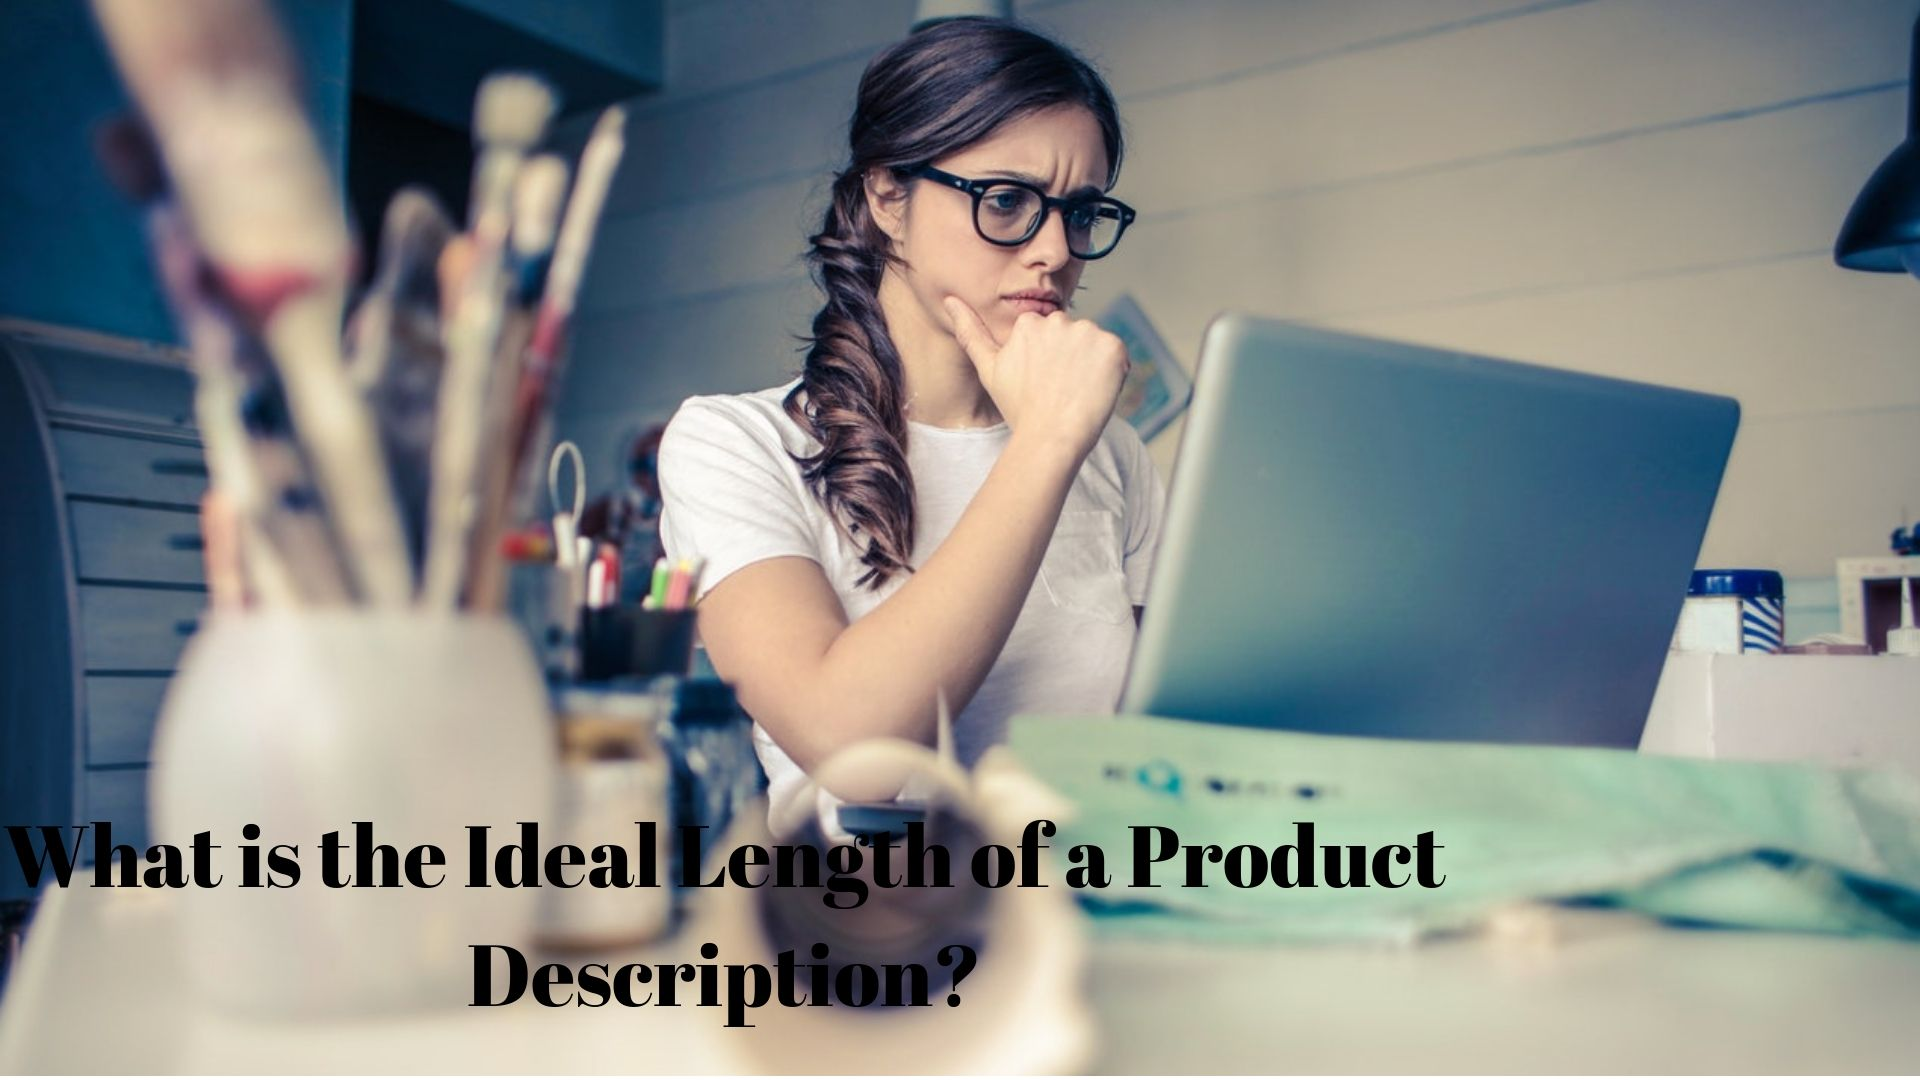 Young woman thinking of ideal length of product description